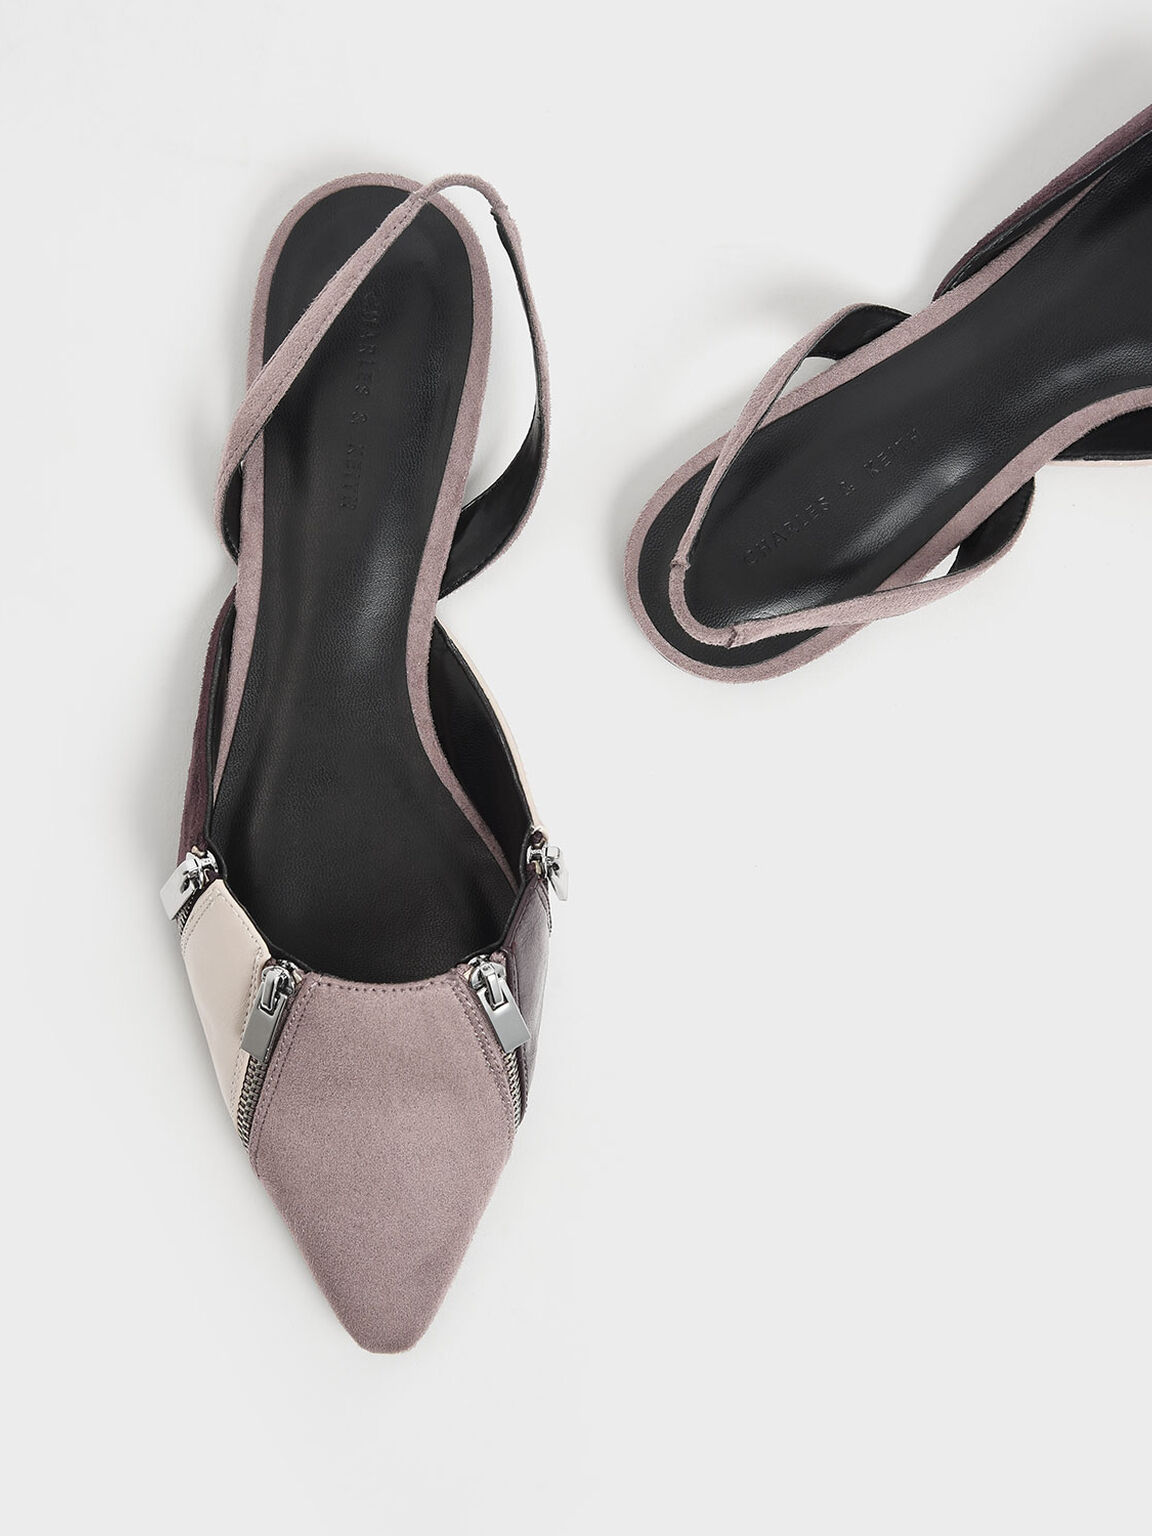 Multicolour Zip Detail Pointed Toe Textured Slingback Flats, Multi, hi-res